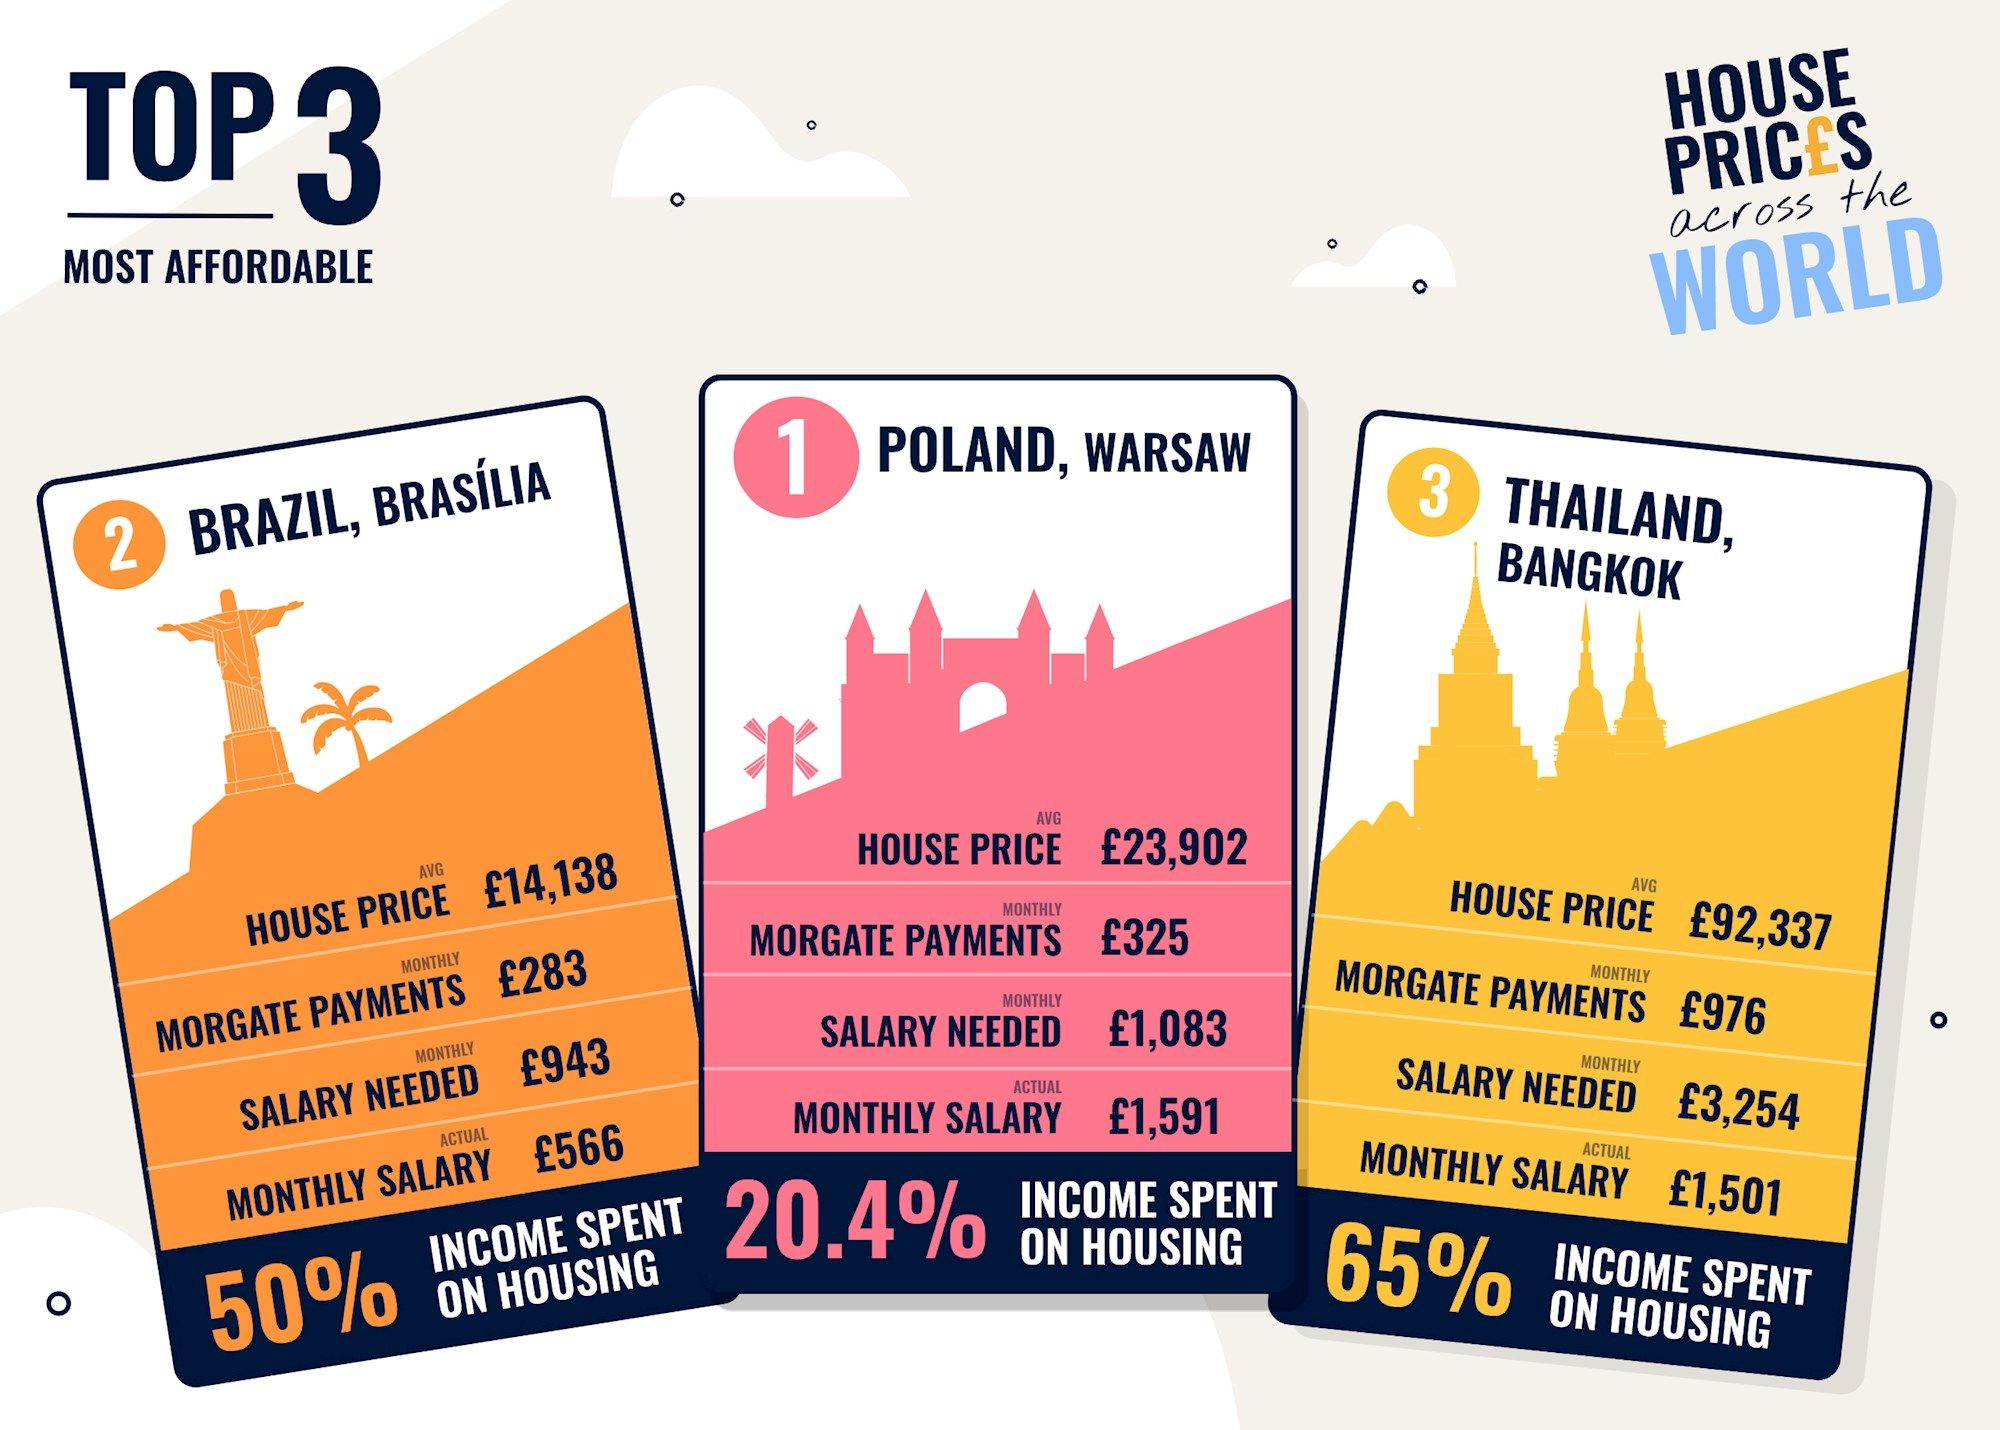 Most affordable countries to buy a house in the world